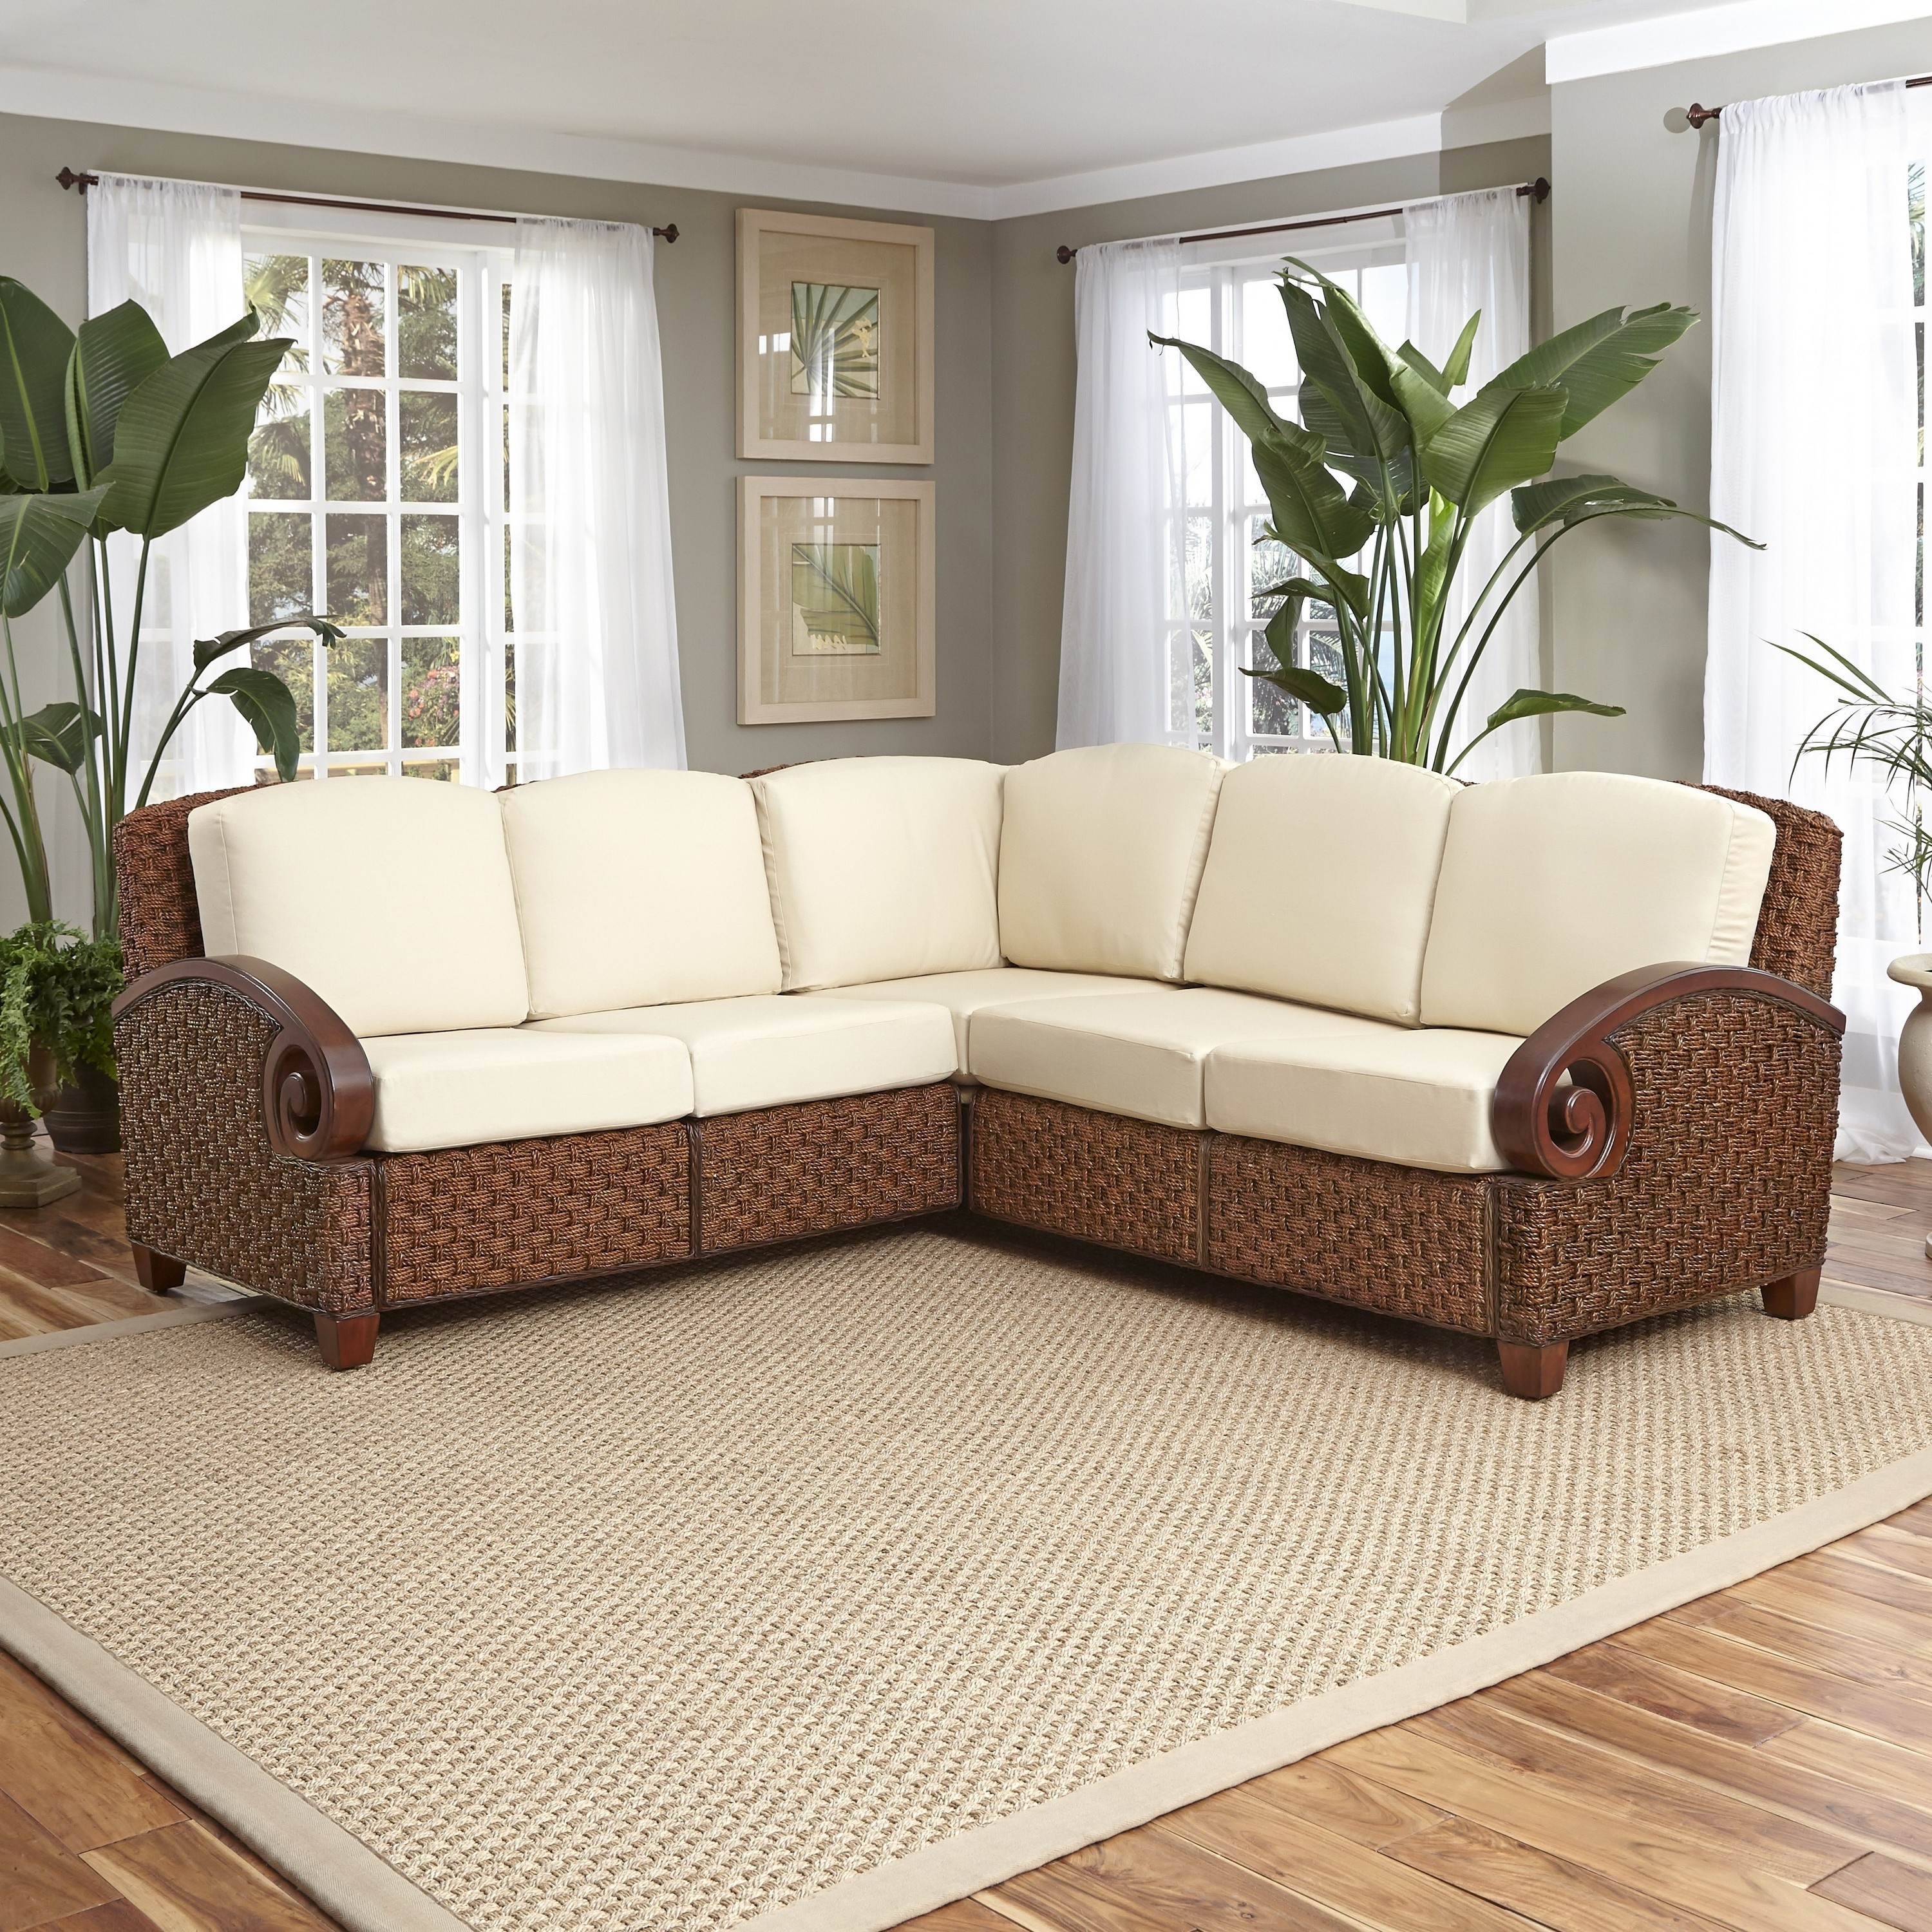 Small Sofas And Chairs Intended For Most Recently Released Sofa : Chairs For Small Spaces Furniture Design For Living Room (View 15 of 15)